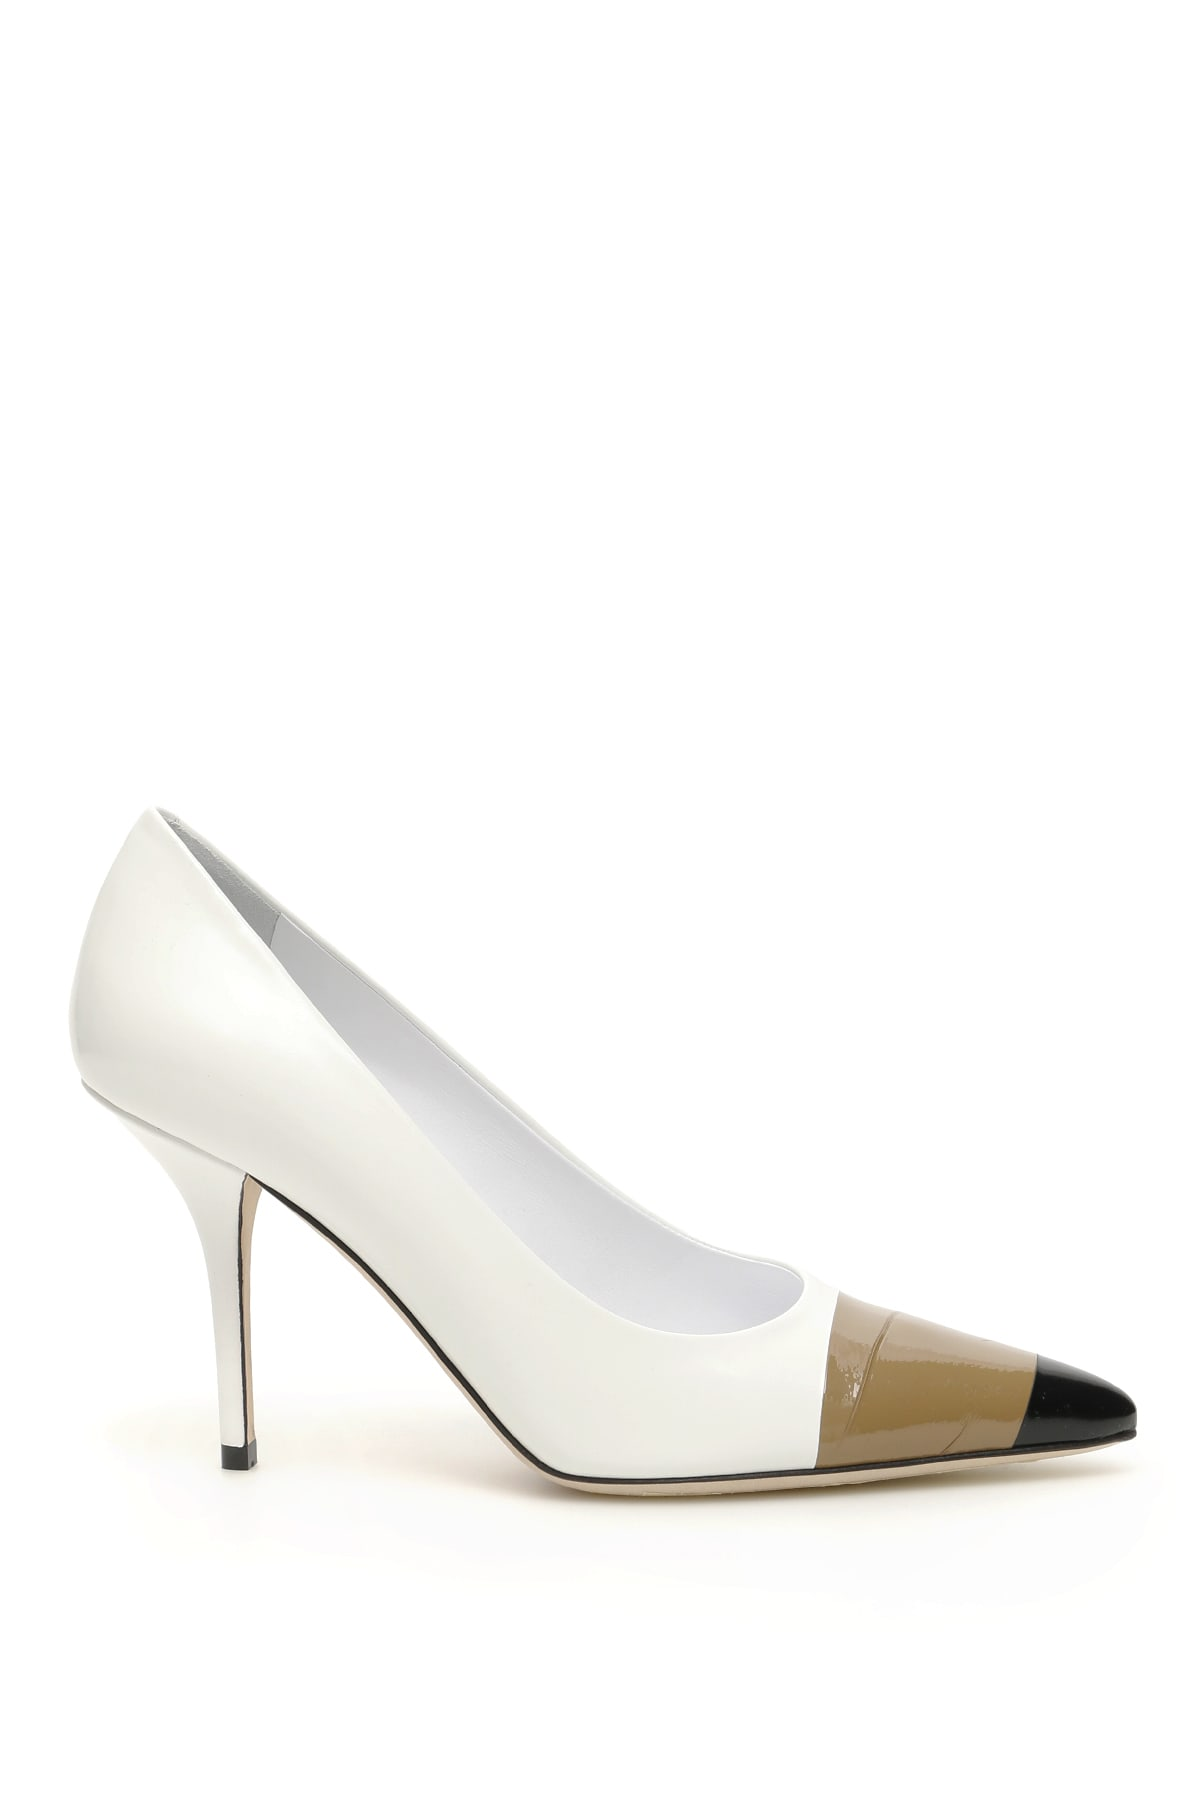 Burberry Annalise Pumps